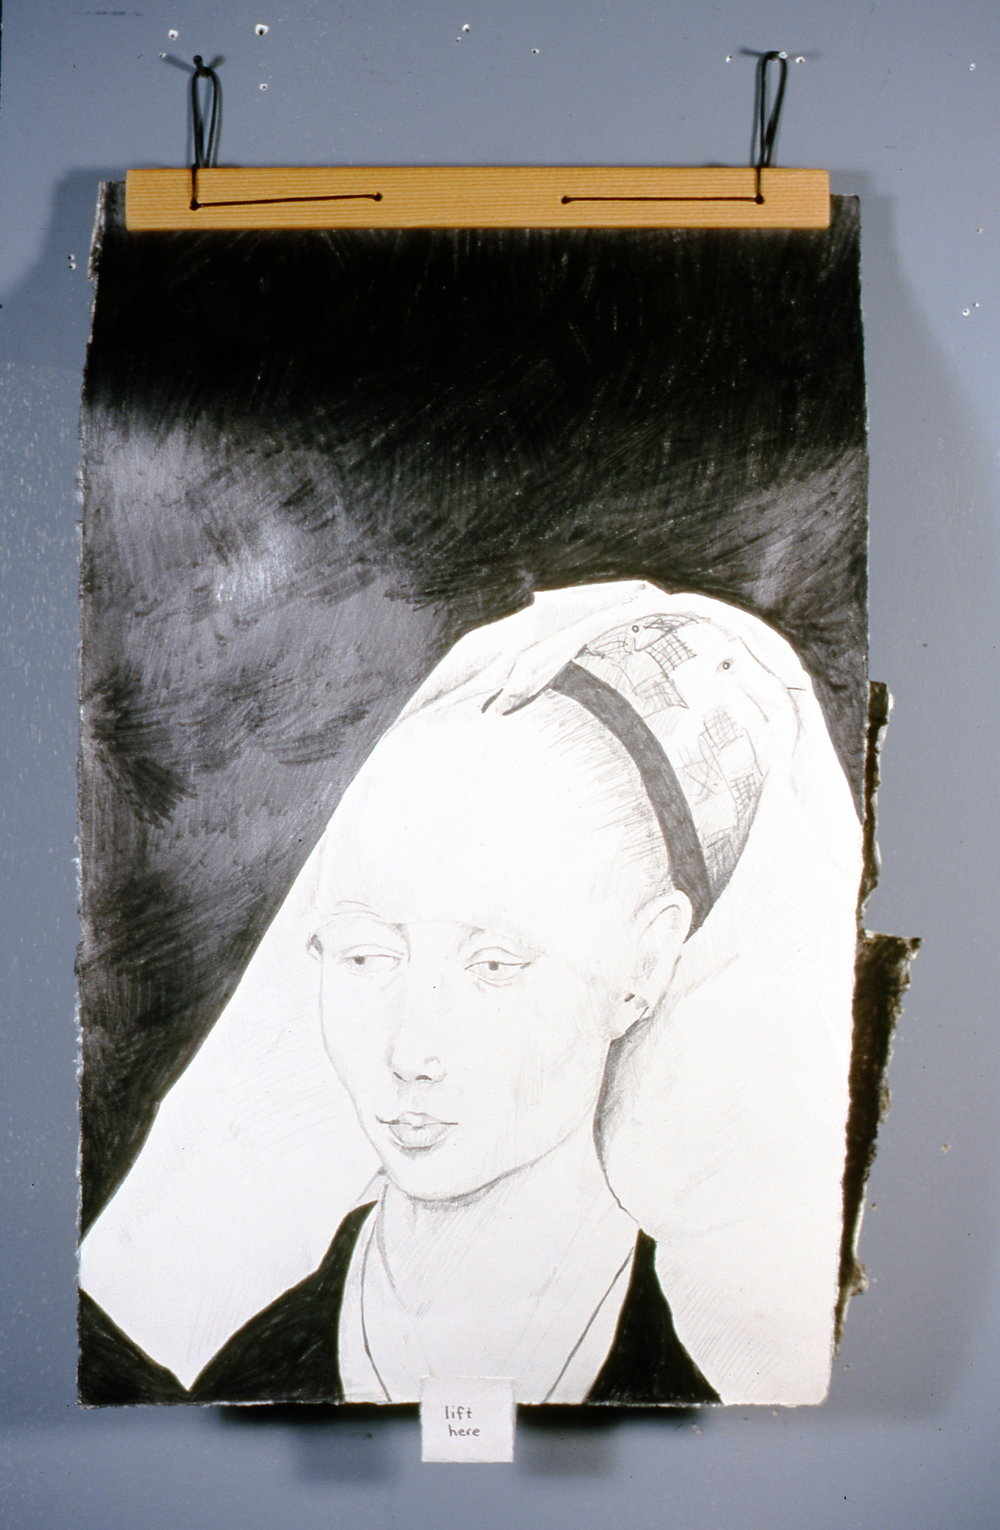 "Woman with Headdress 2, 2000, Richard Motchman, mixed media/ drawing, 17"" x 8"", 2000.02.01, gift of the artist"